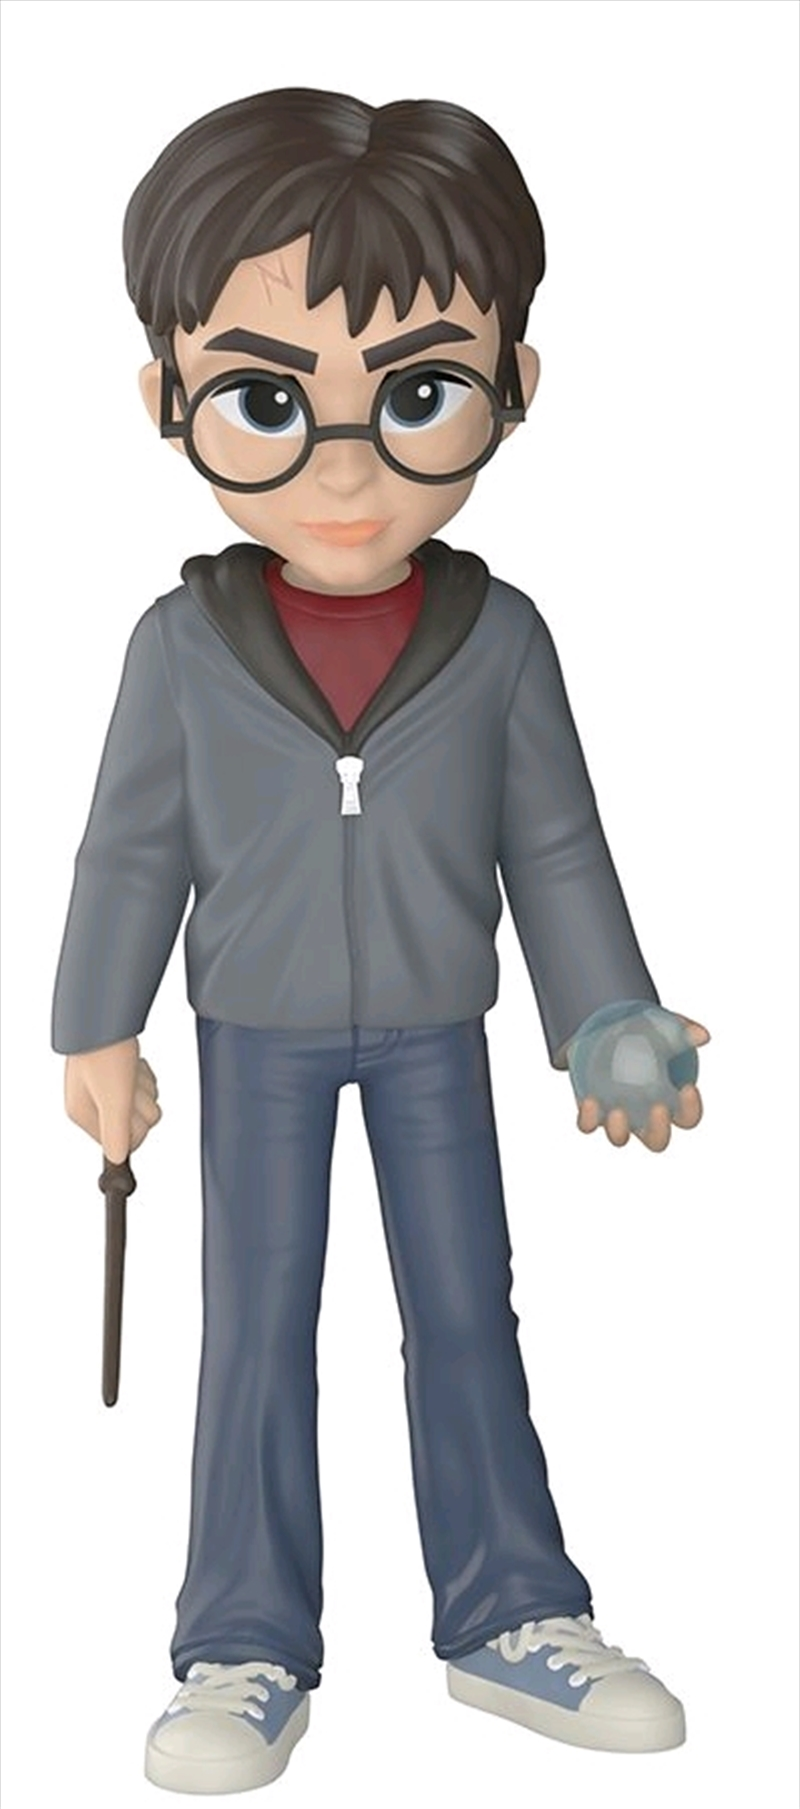 Harry Potter - Harry with Prophecy Rock Candy | Merchandise